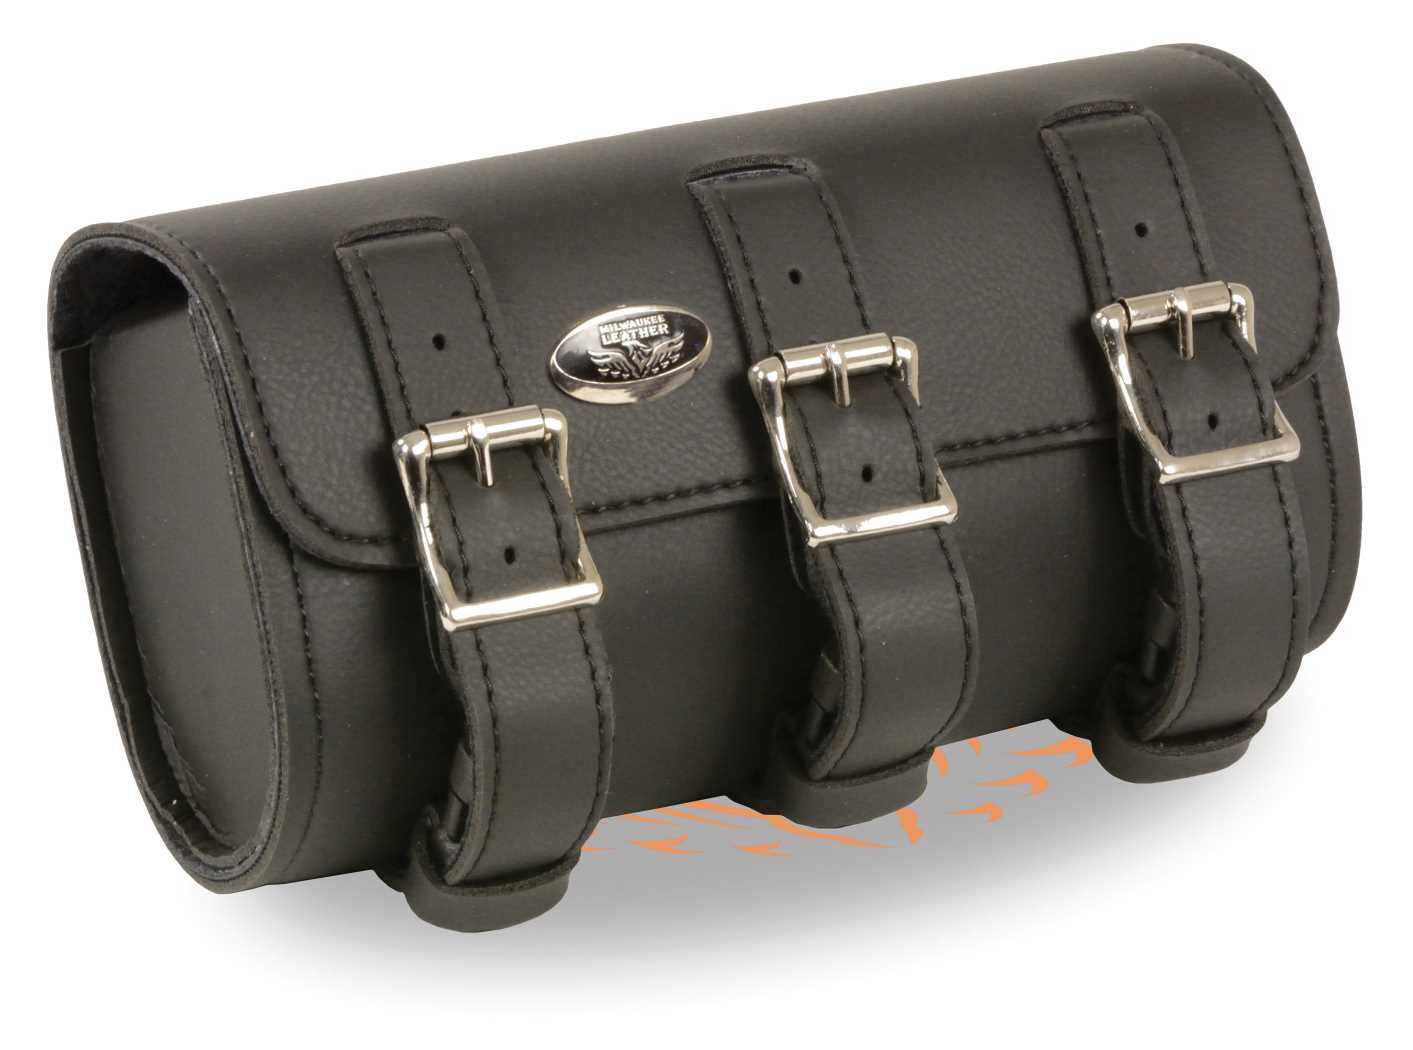 PVC THREE STRAPS TOOL BAG W/ QUICK RELEASE